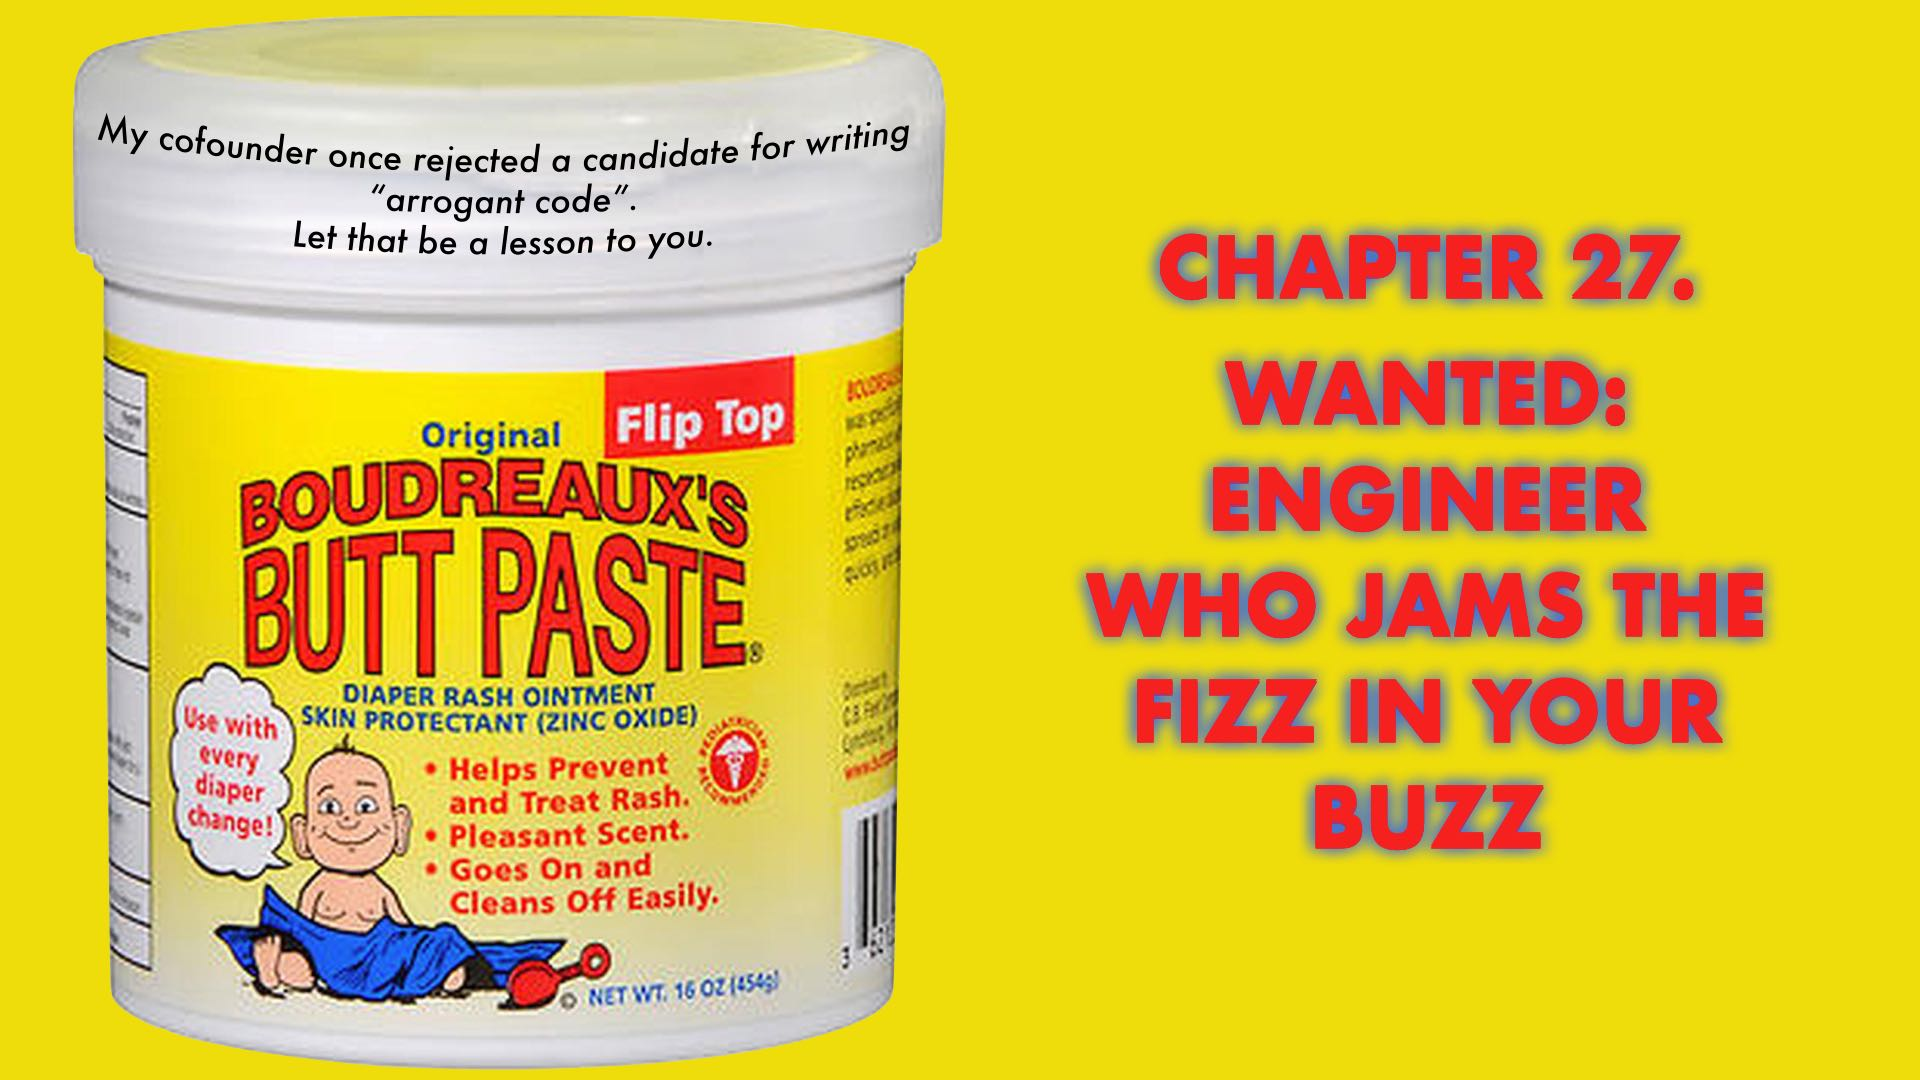 Wanted: Engineer Who Jams the Fizz in Your Buzz